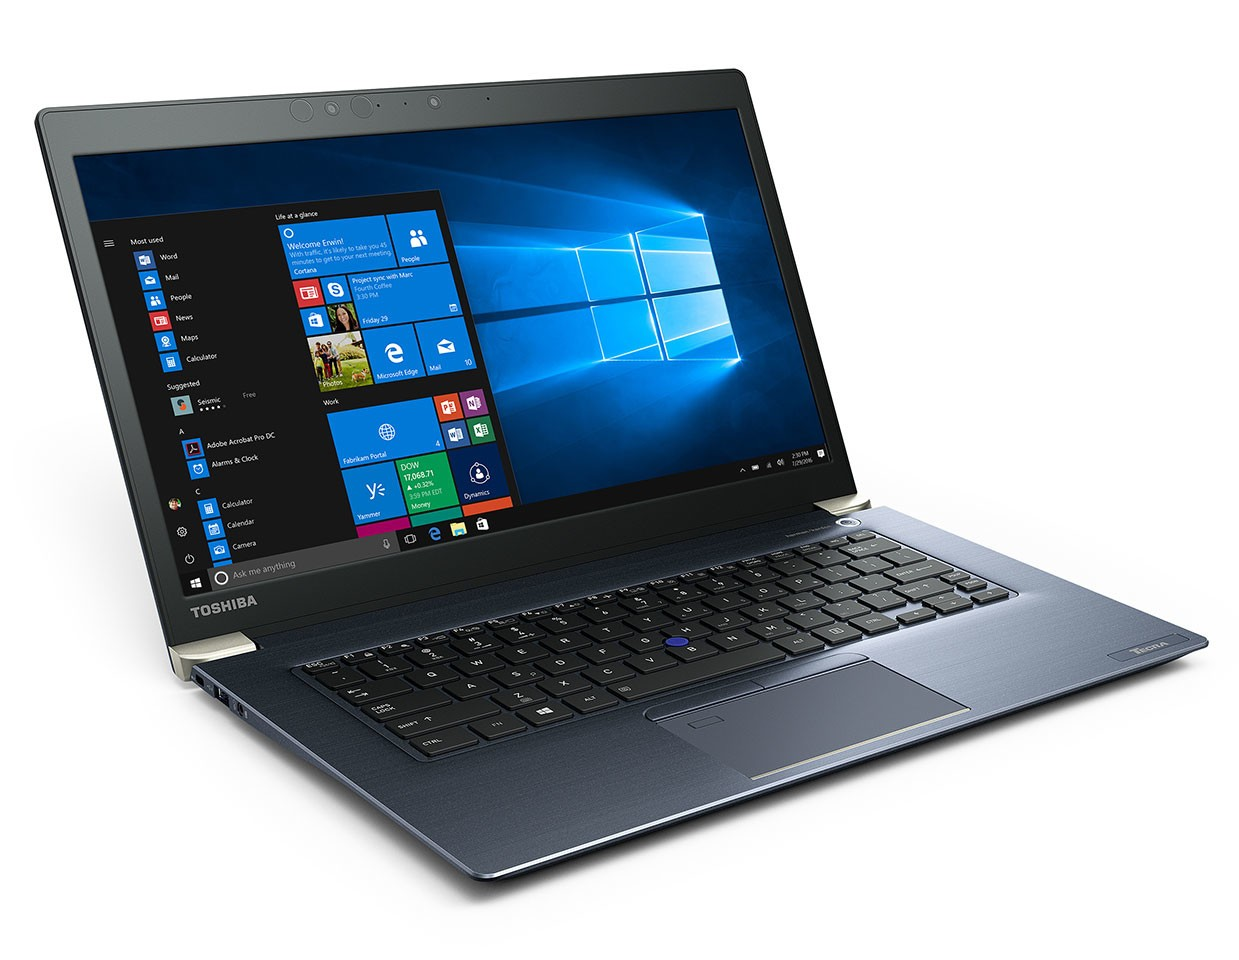 Toshiba Announces Availability Of New 14